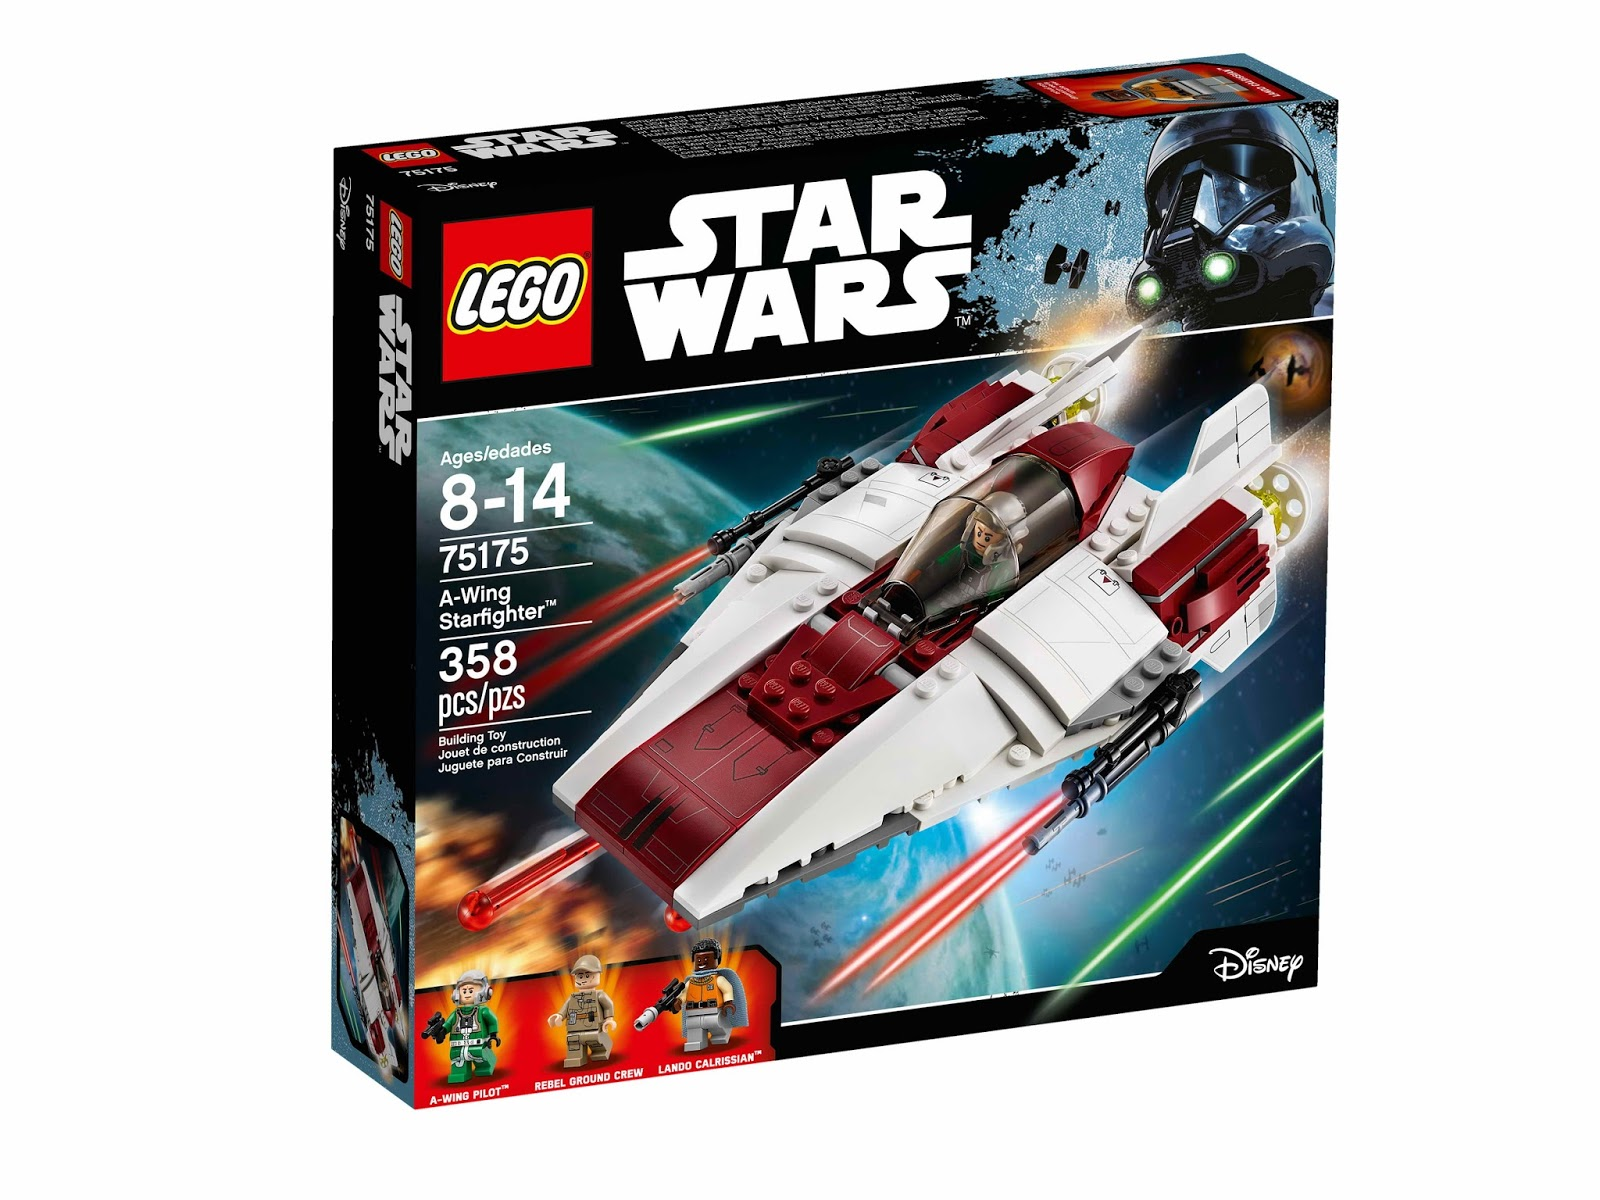 Lego Gossip 011216 Lego 75175 A Wing Starfighter Box Art